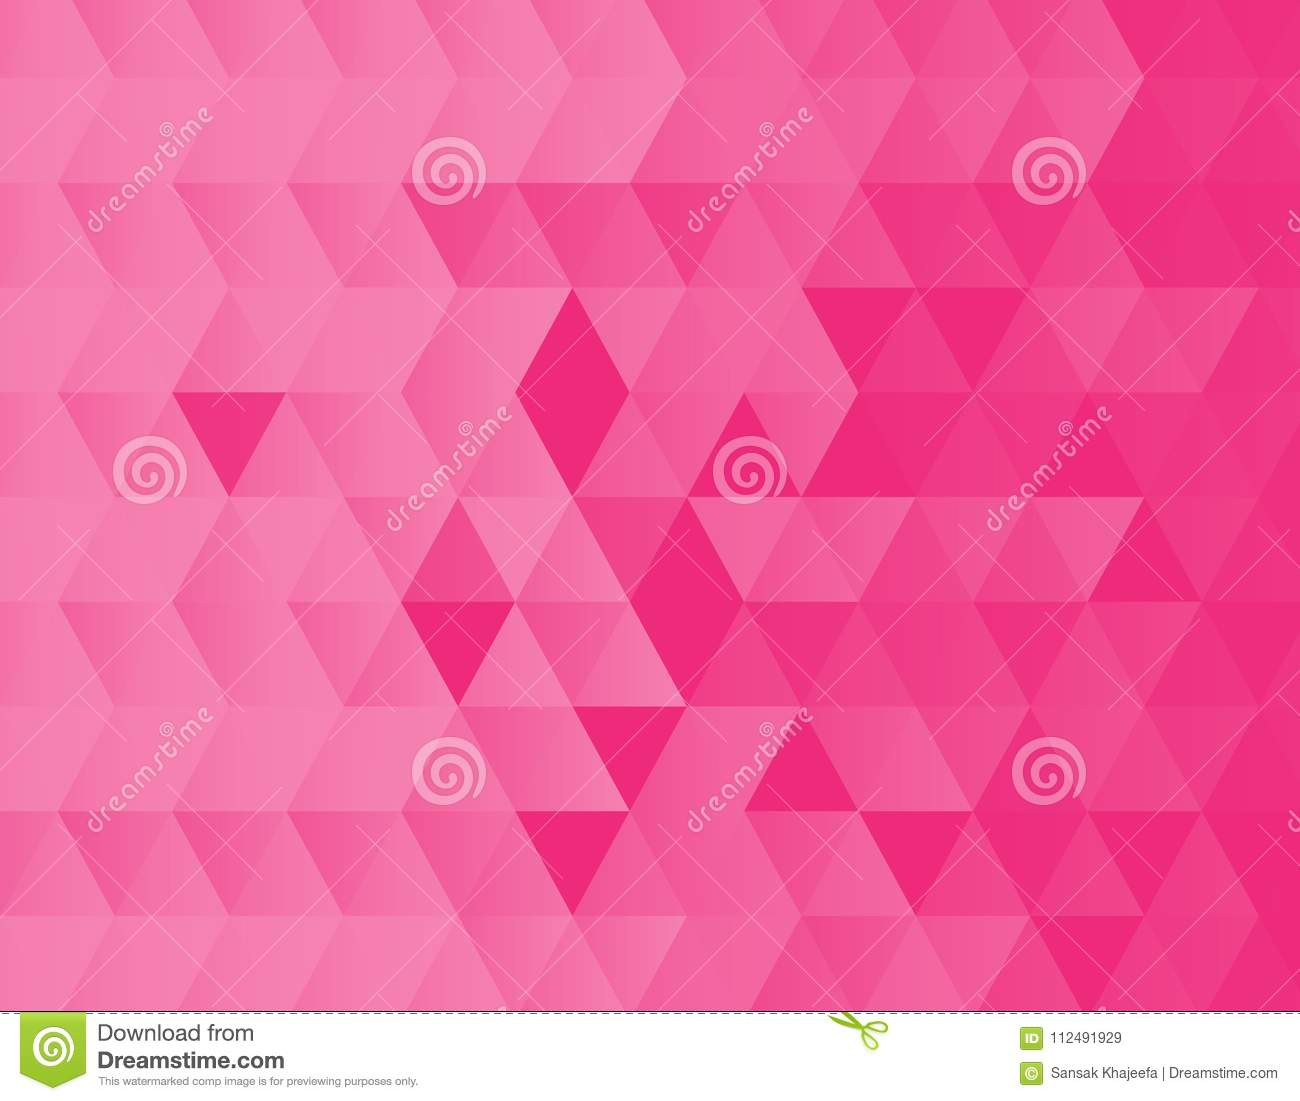 abstract pink triangles background texture design stock illustration